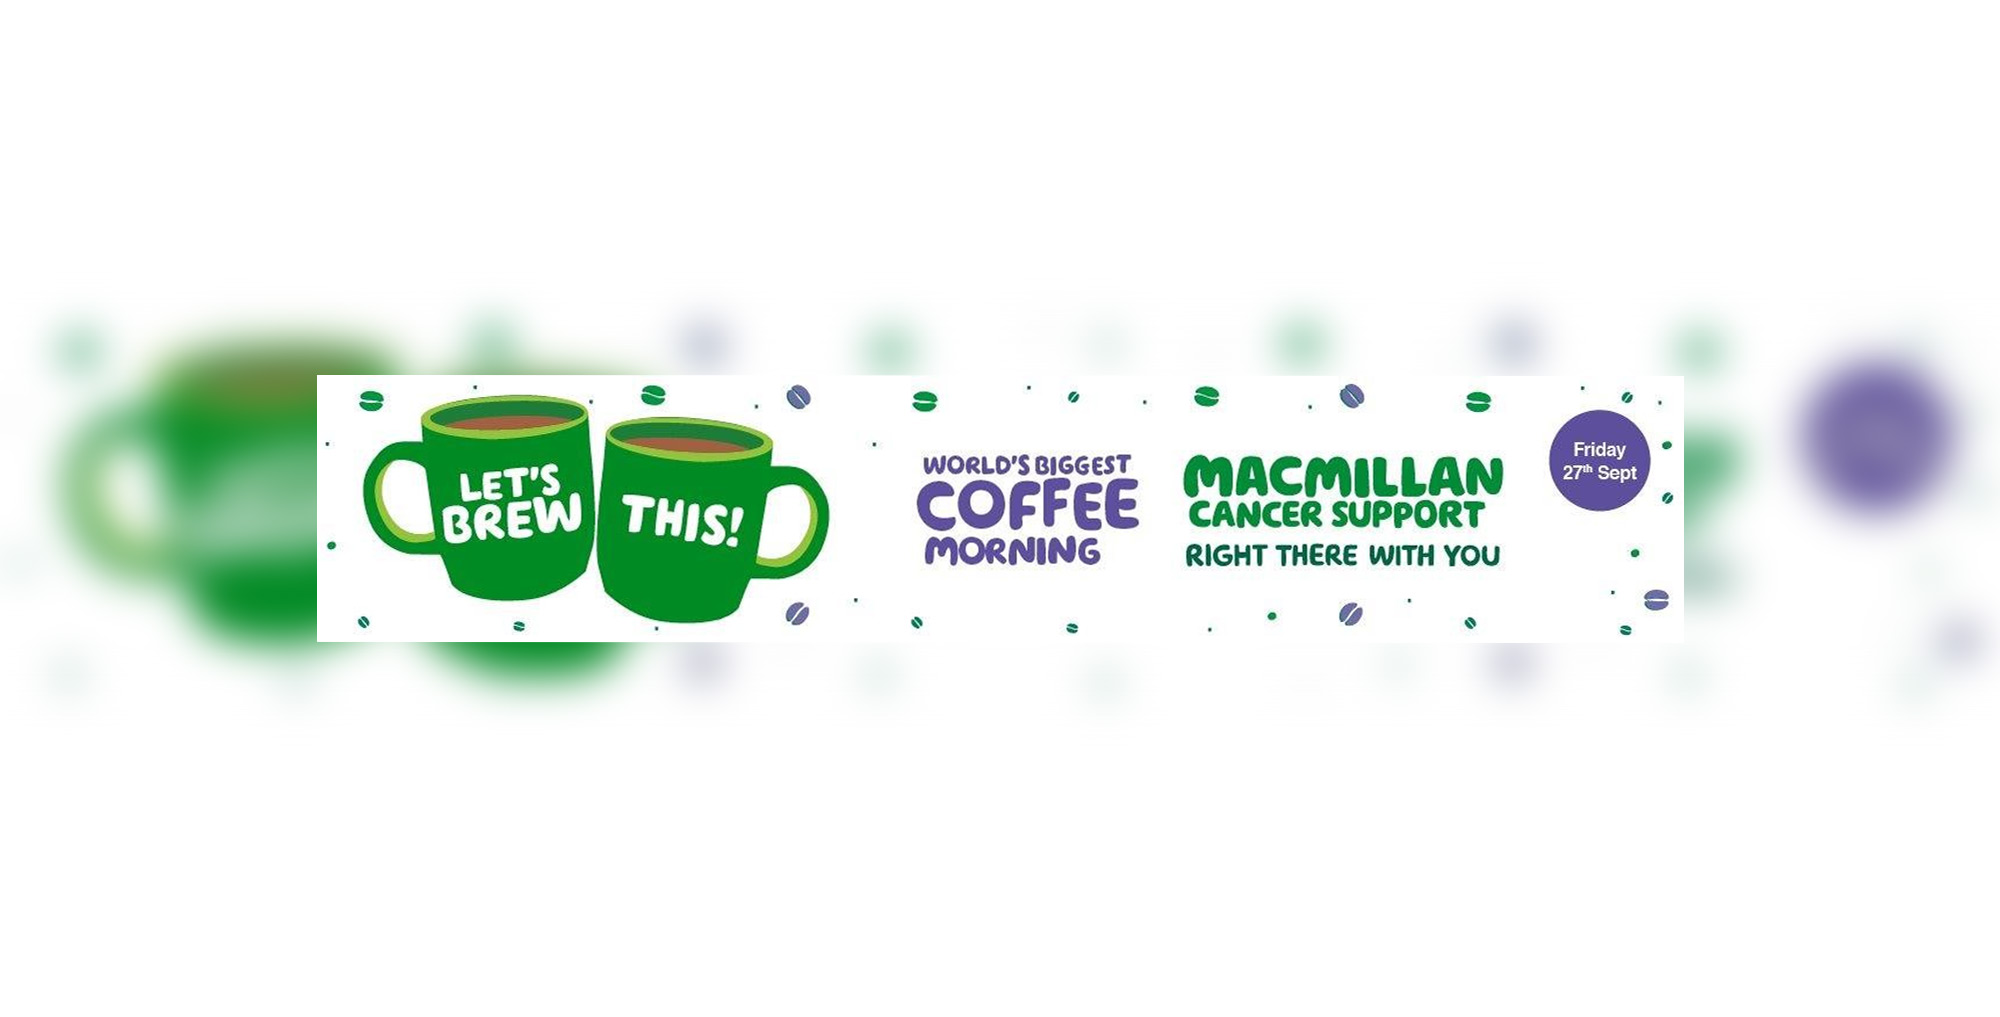 Macmillian coffee morning poster